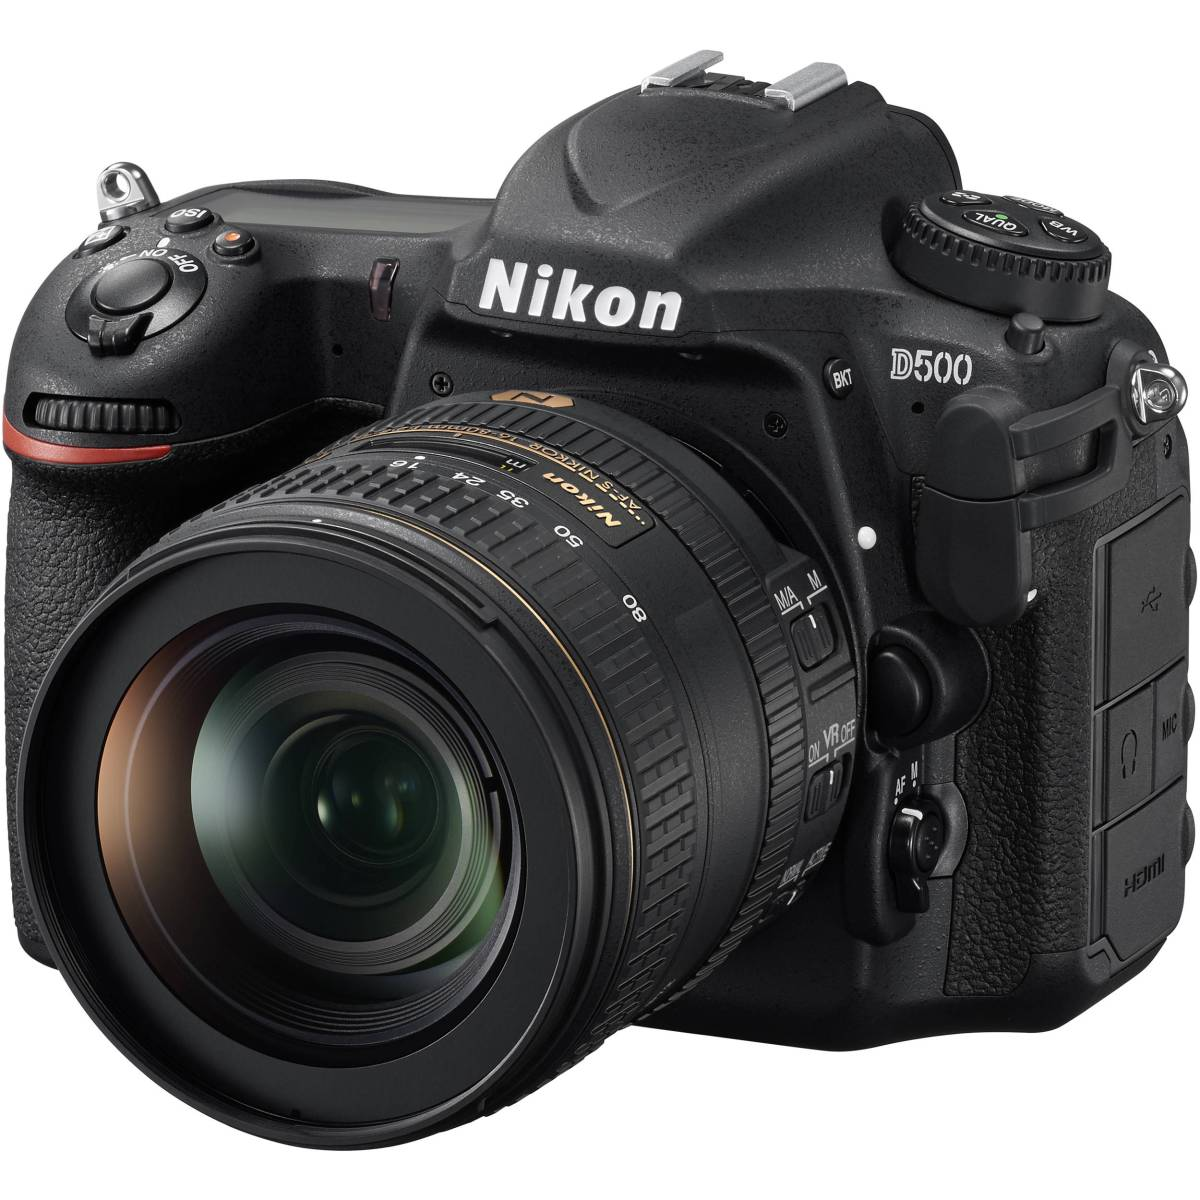 Nikon D500, my hands on review